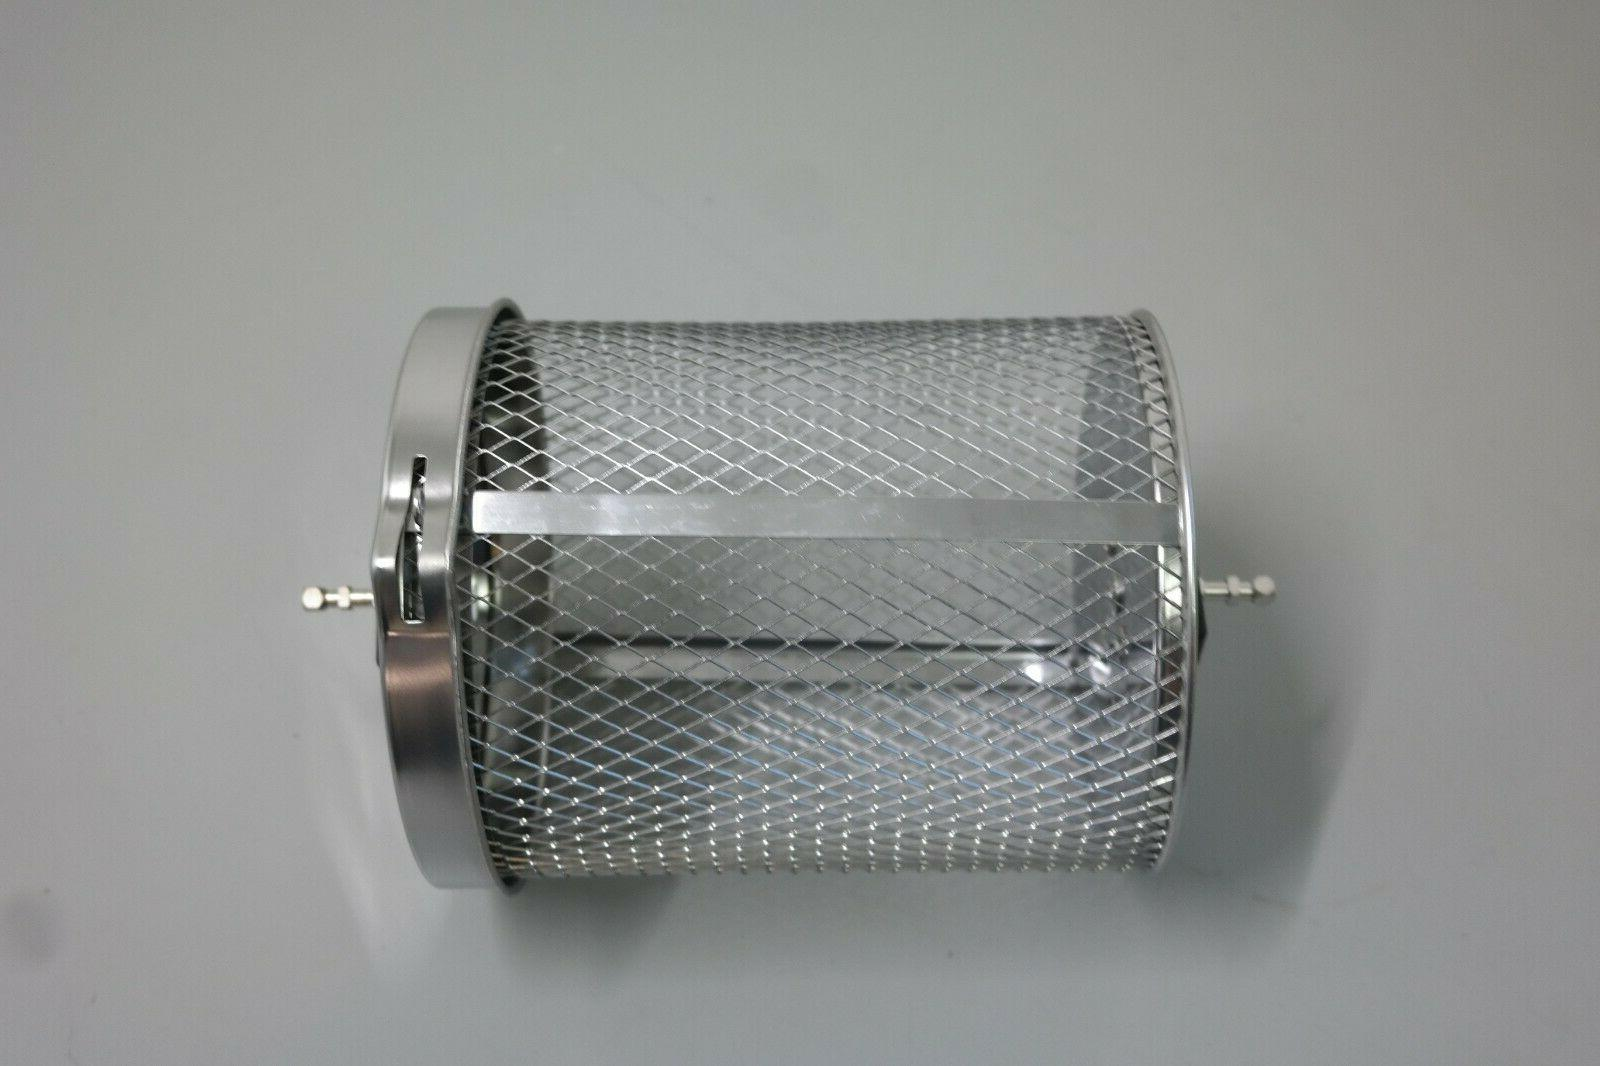 OEM Cage Parts FOR VORTEX 7in1